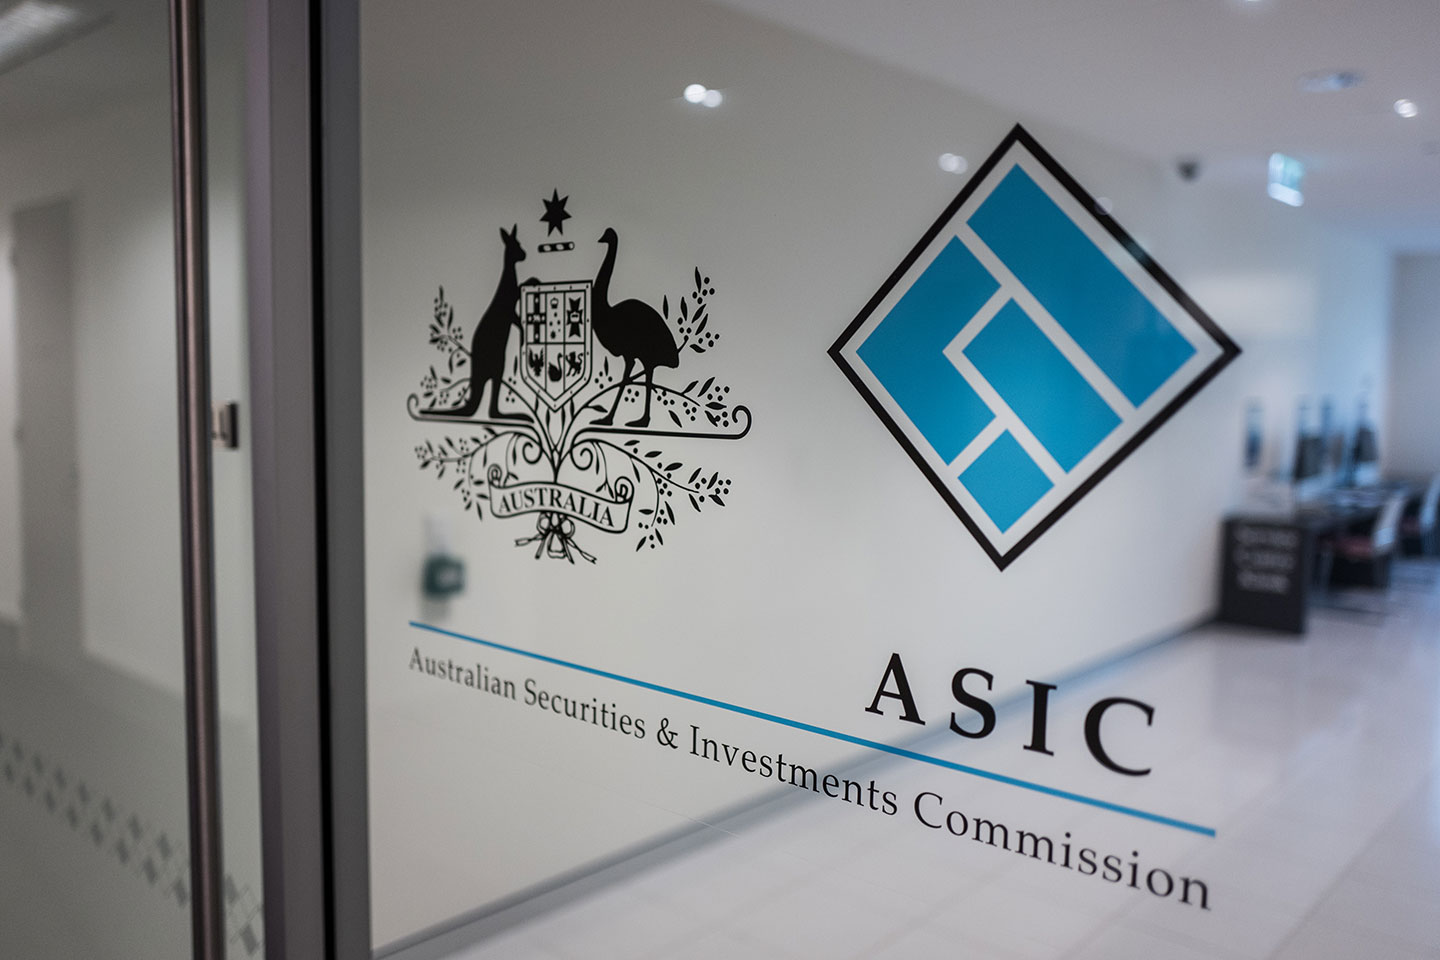 Incident: ASIC reports server breached via Accellion vulnerability | ZDNet - Australian Information Security Awareness and Advisory